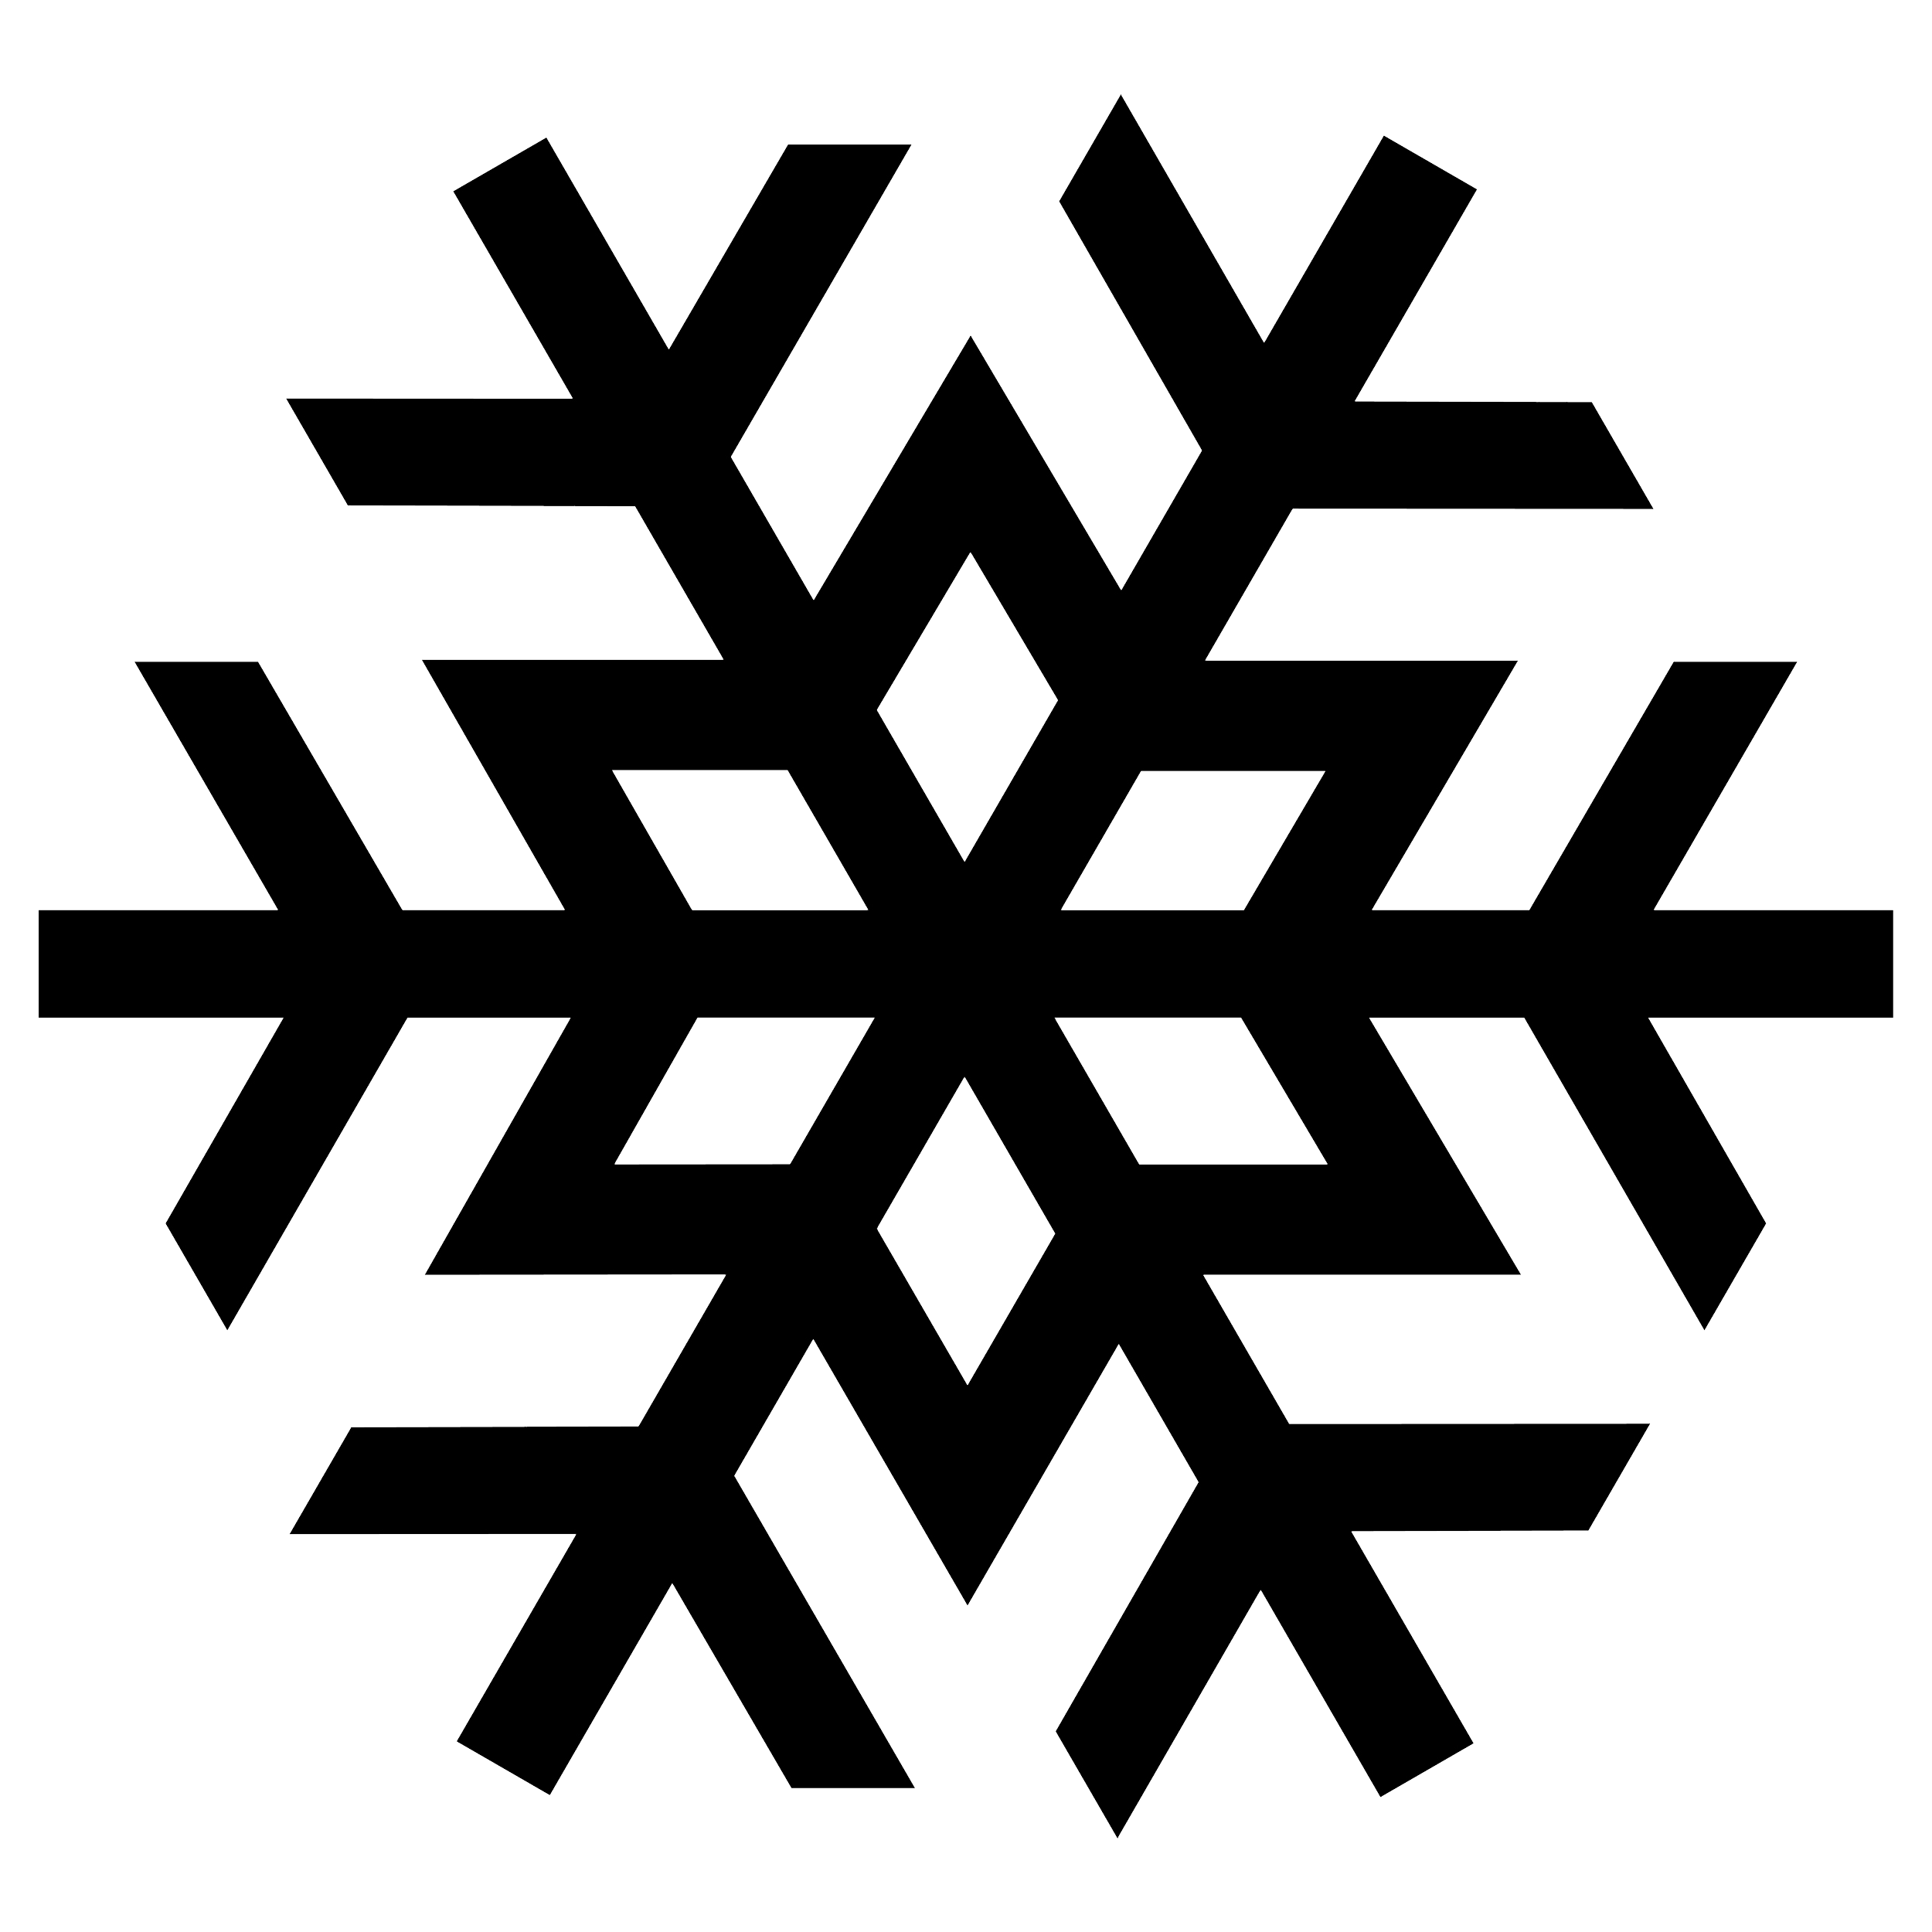 Snowflake clipart black and white png clip art transparent stock Snowflake Black transparent PNG - StickPNG clip art transparent stock